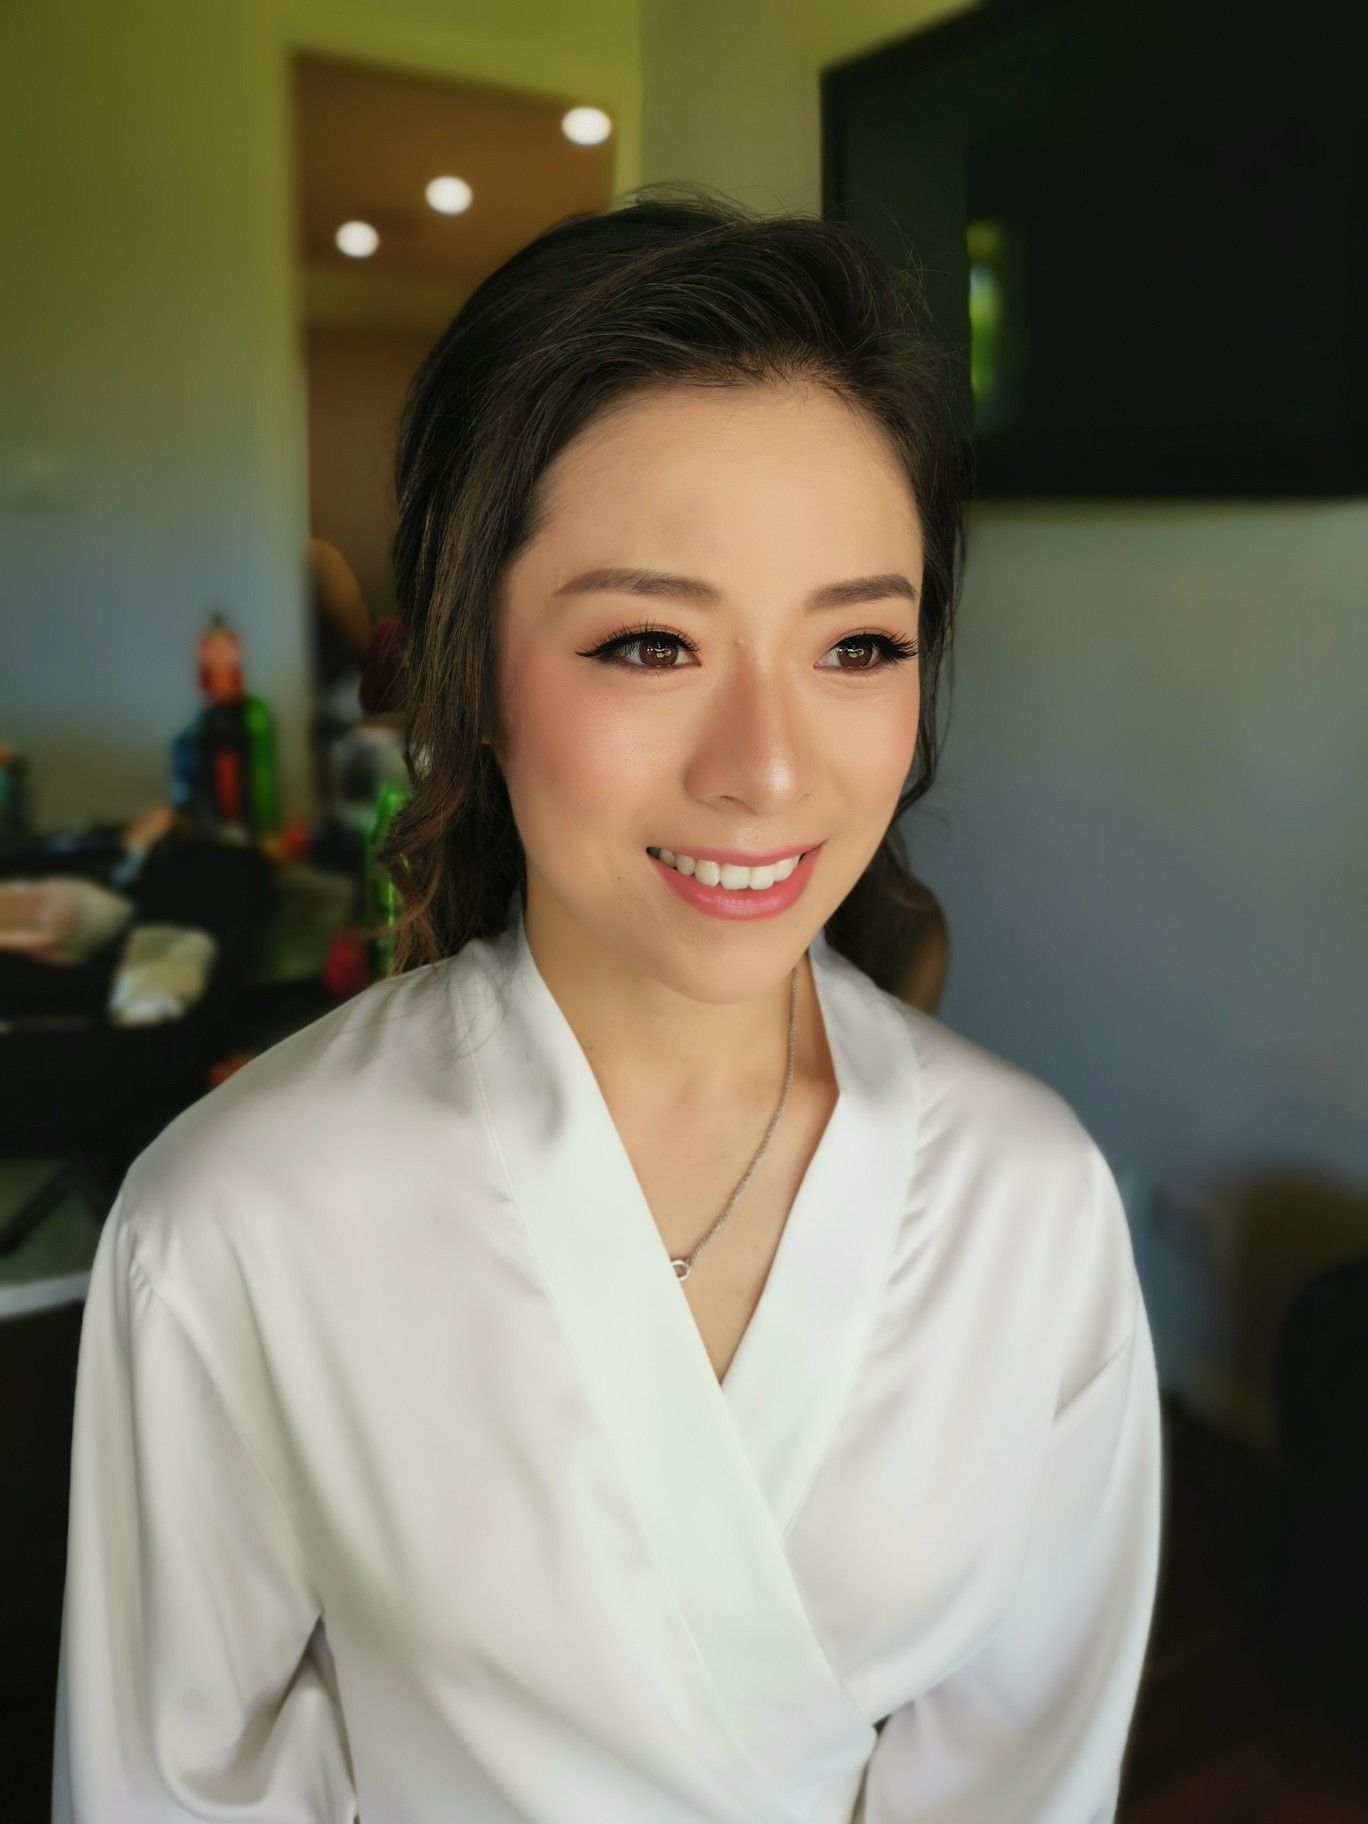 Amy chan is a sydney based asian wedding makeup artist